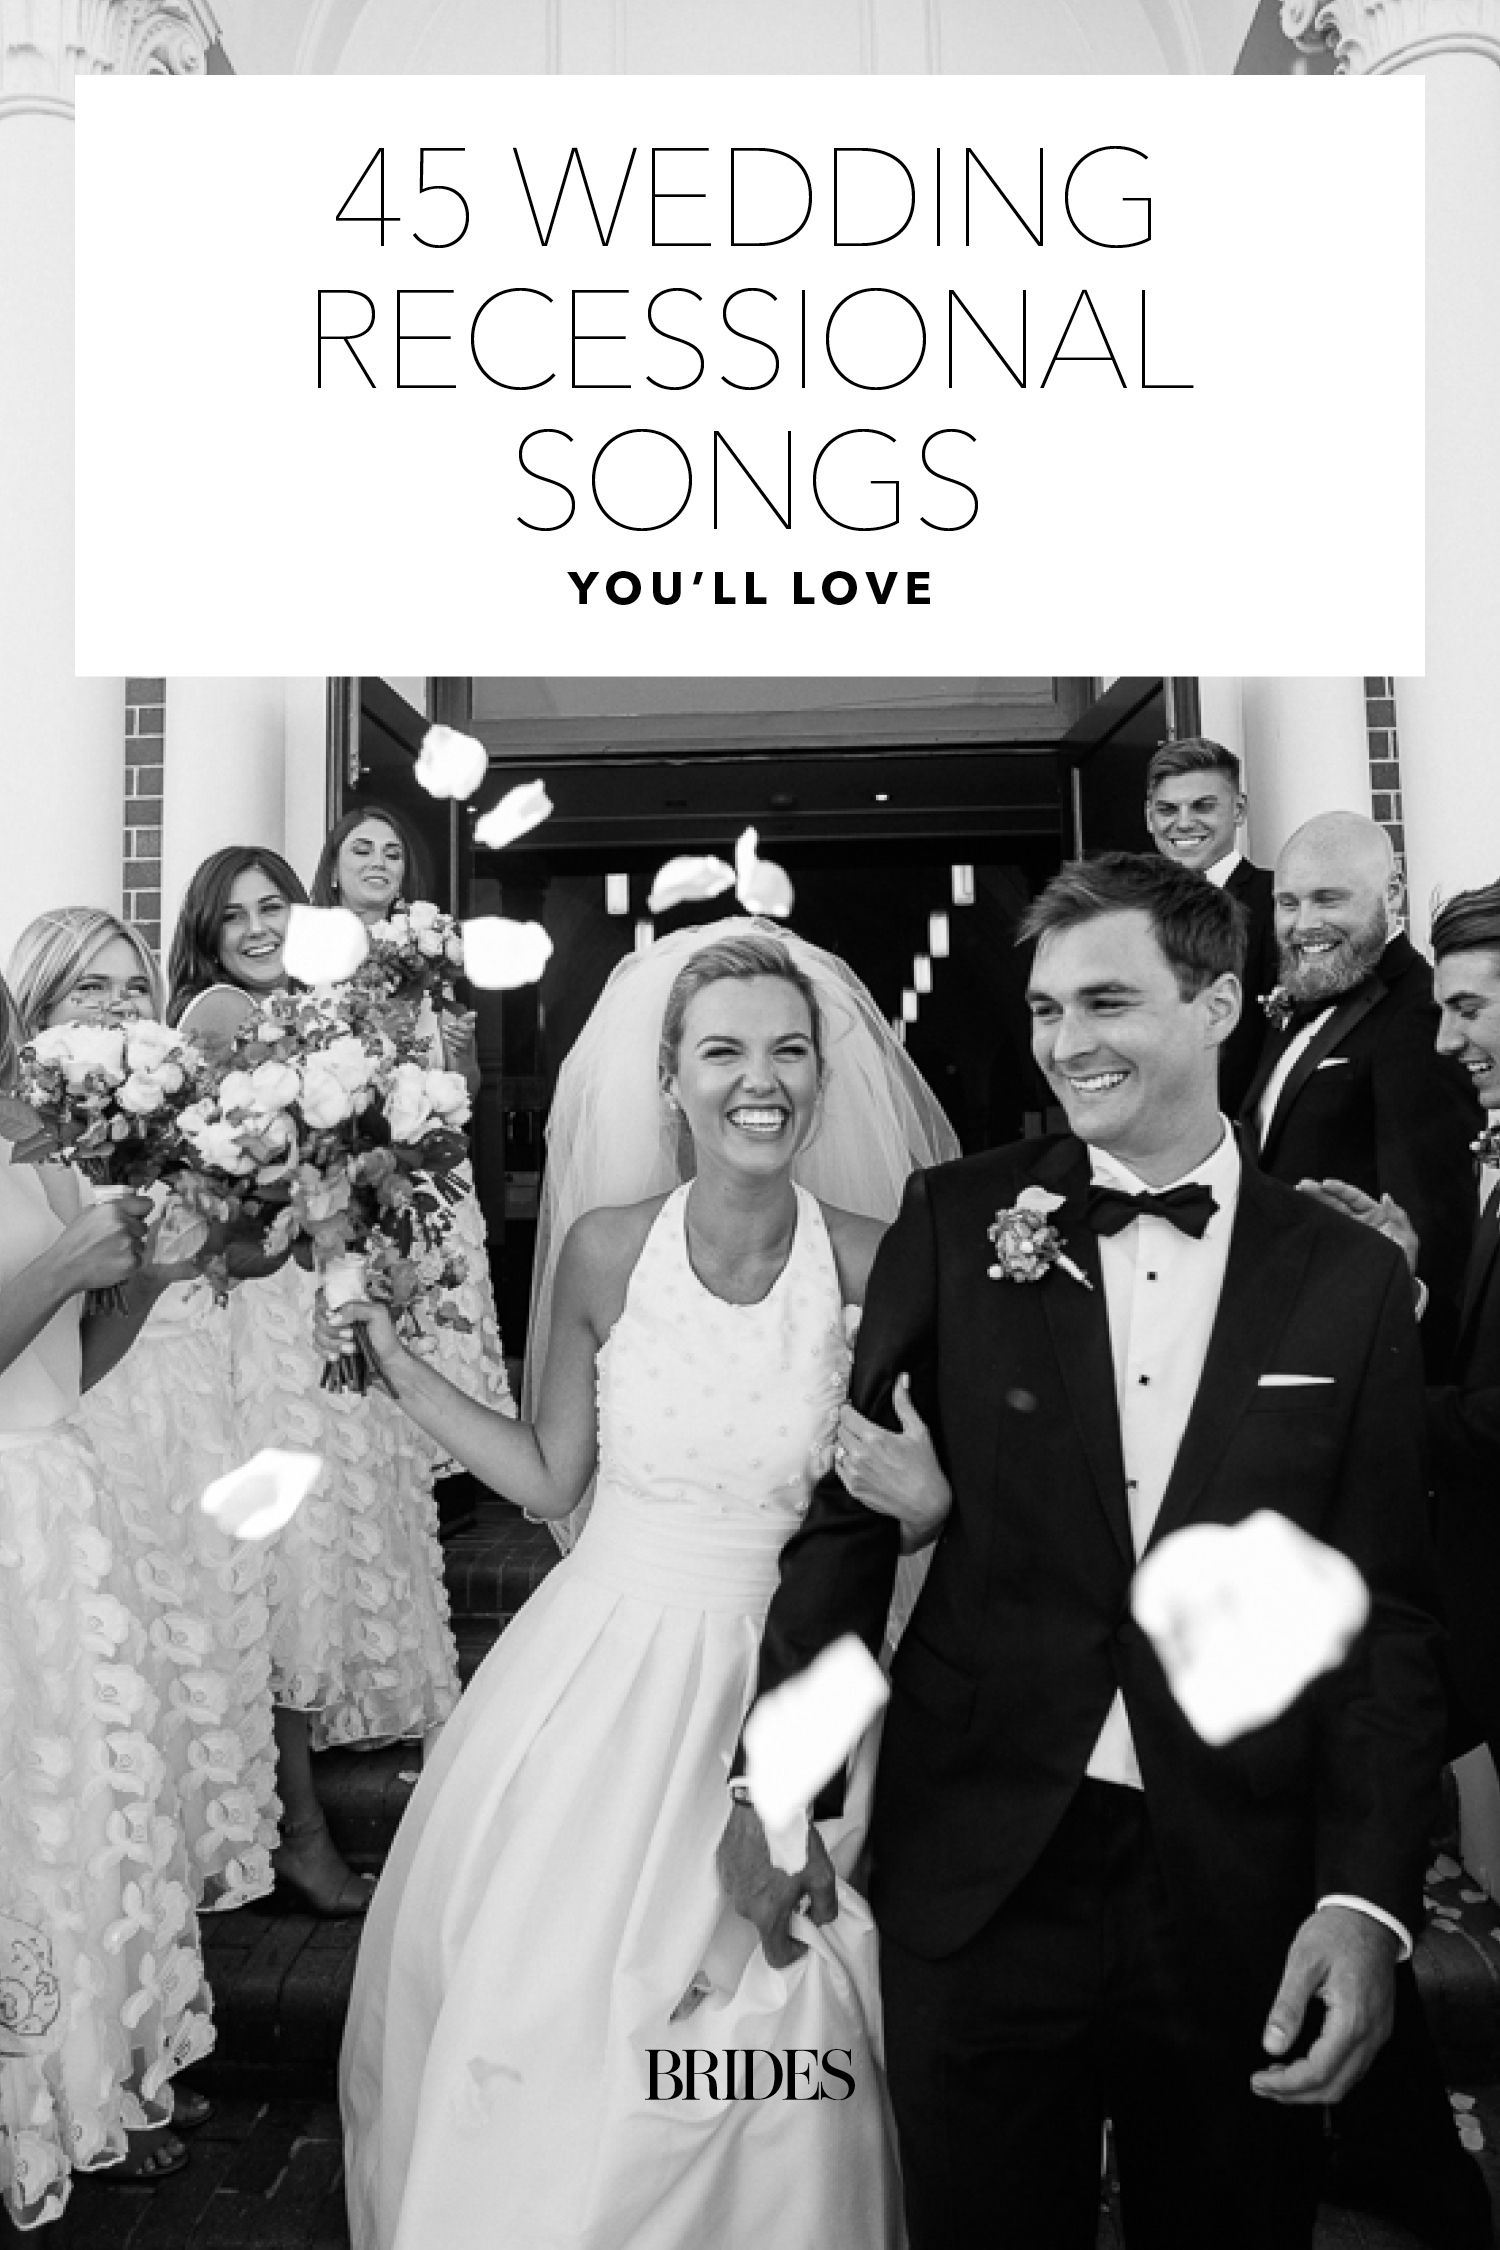 75 Wedding Recessional Songs You Ll Love Wedding Recessional Songs Wedding Ceremony Music Wedding Recessional